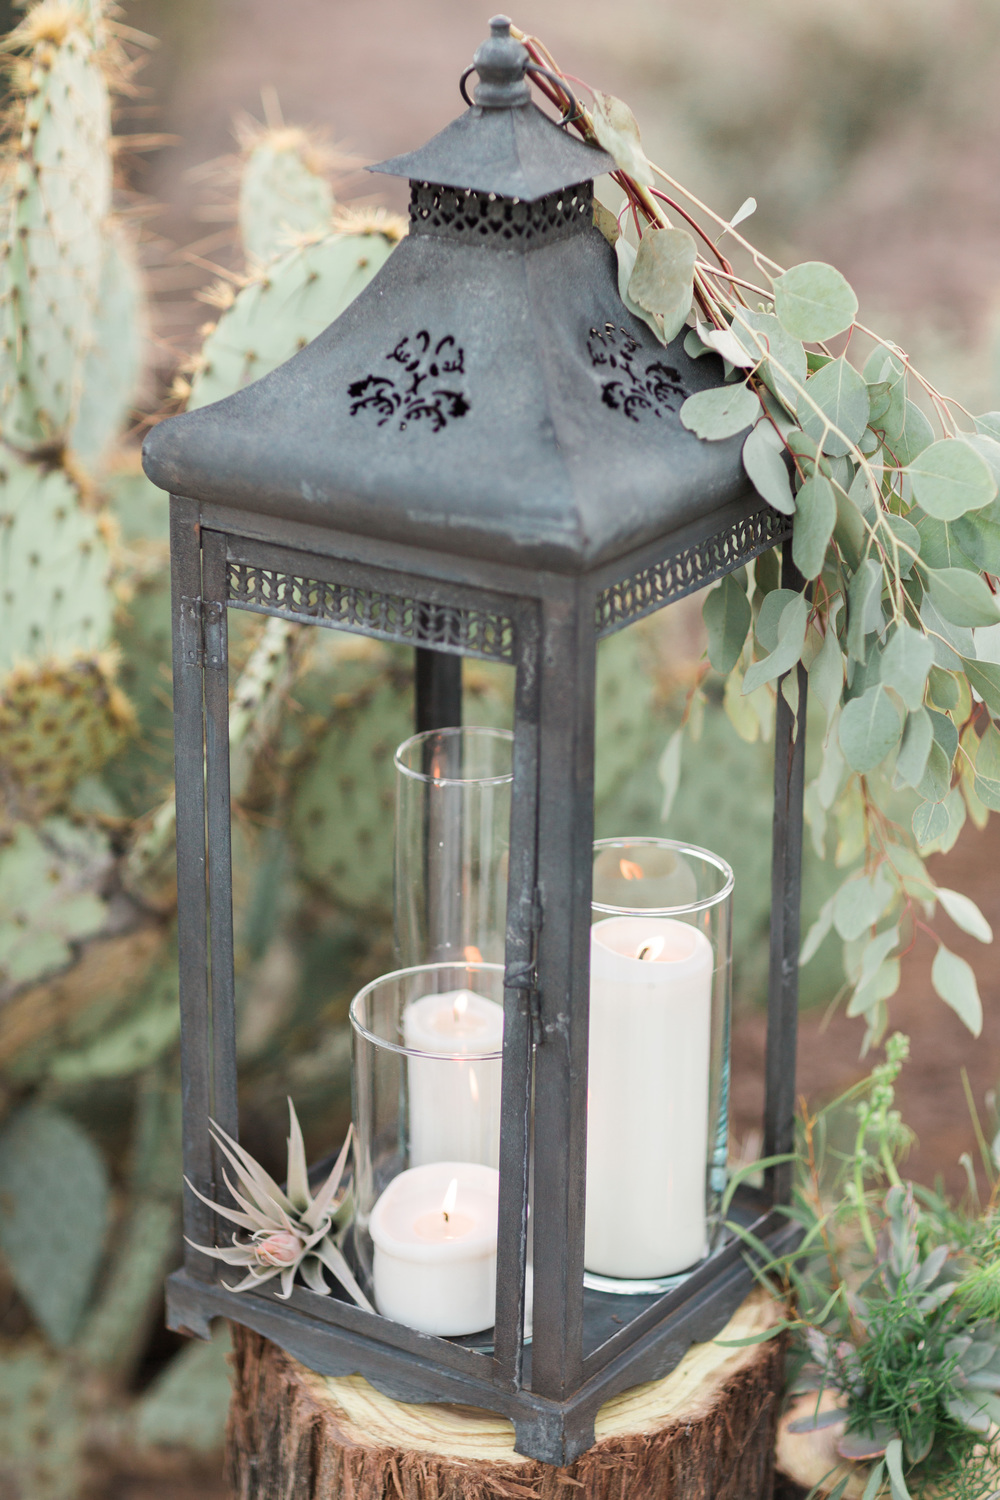 Beautiful lantern in the desert with candles, air plants and eucalyptus